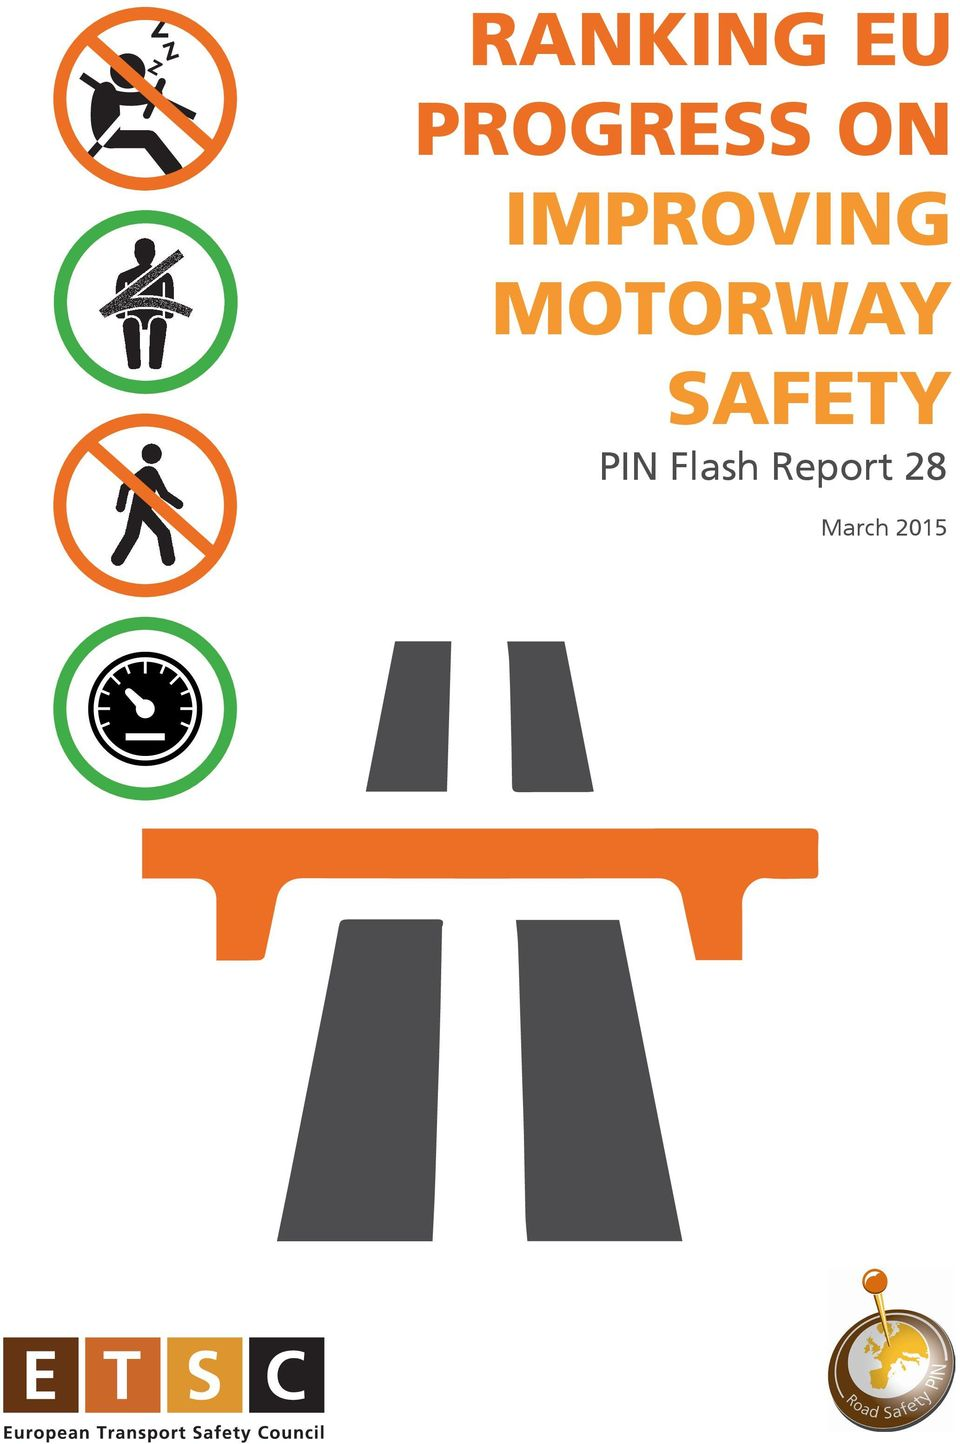 MOTORWAY SAFETY PIN